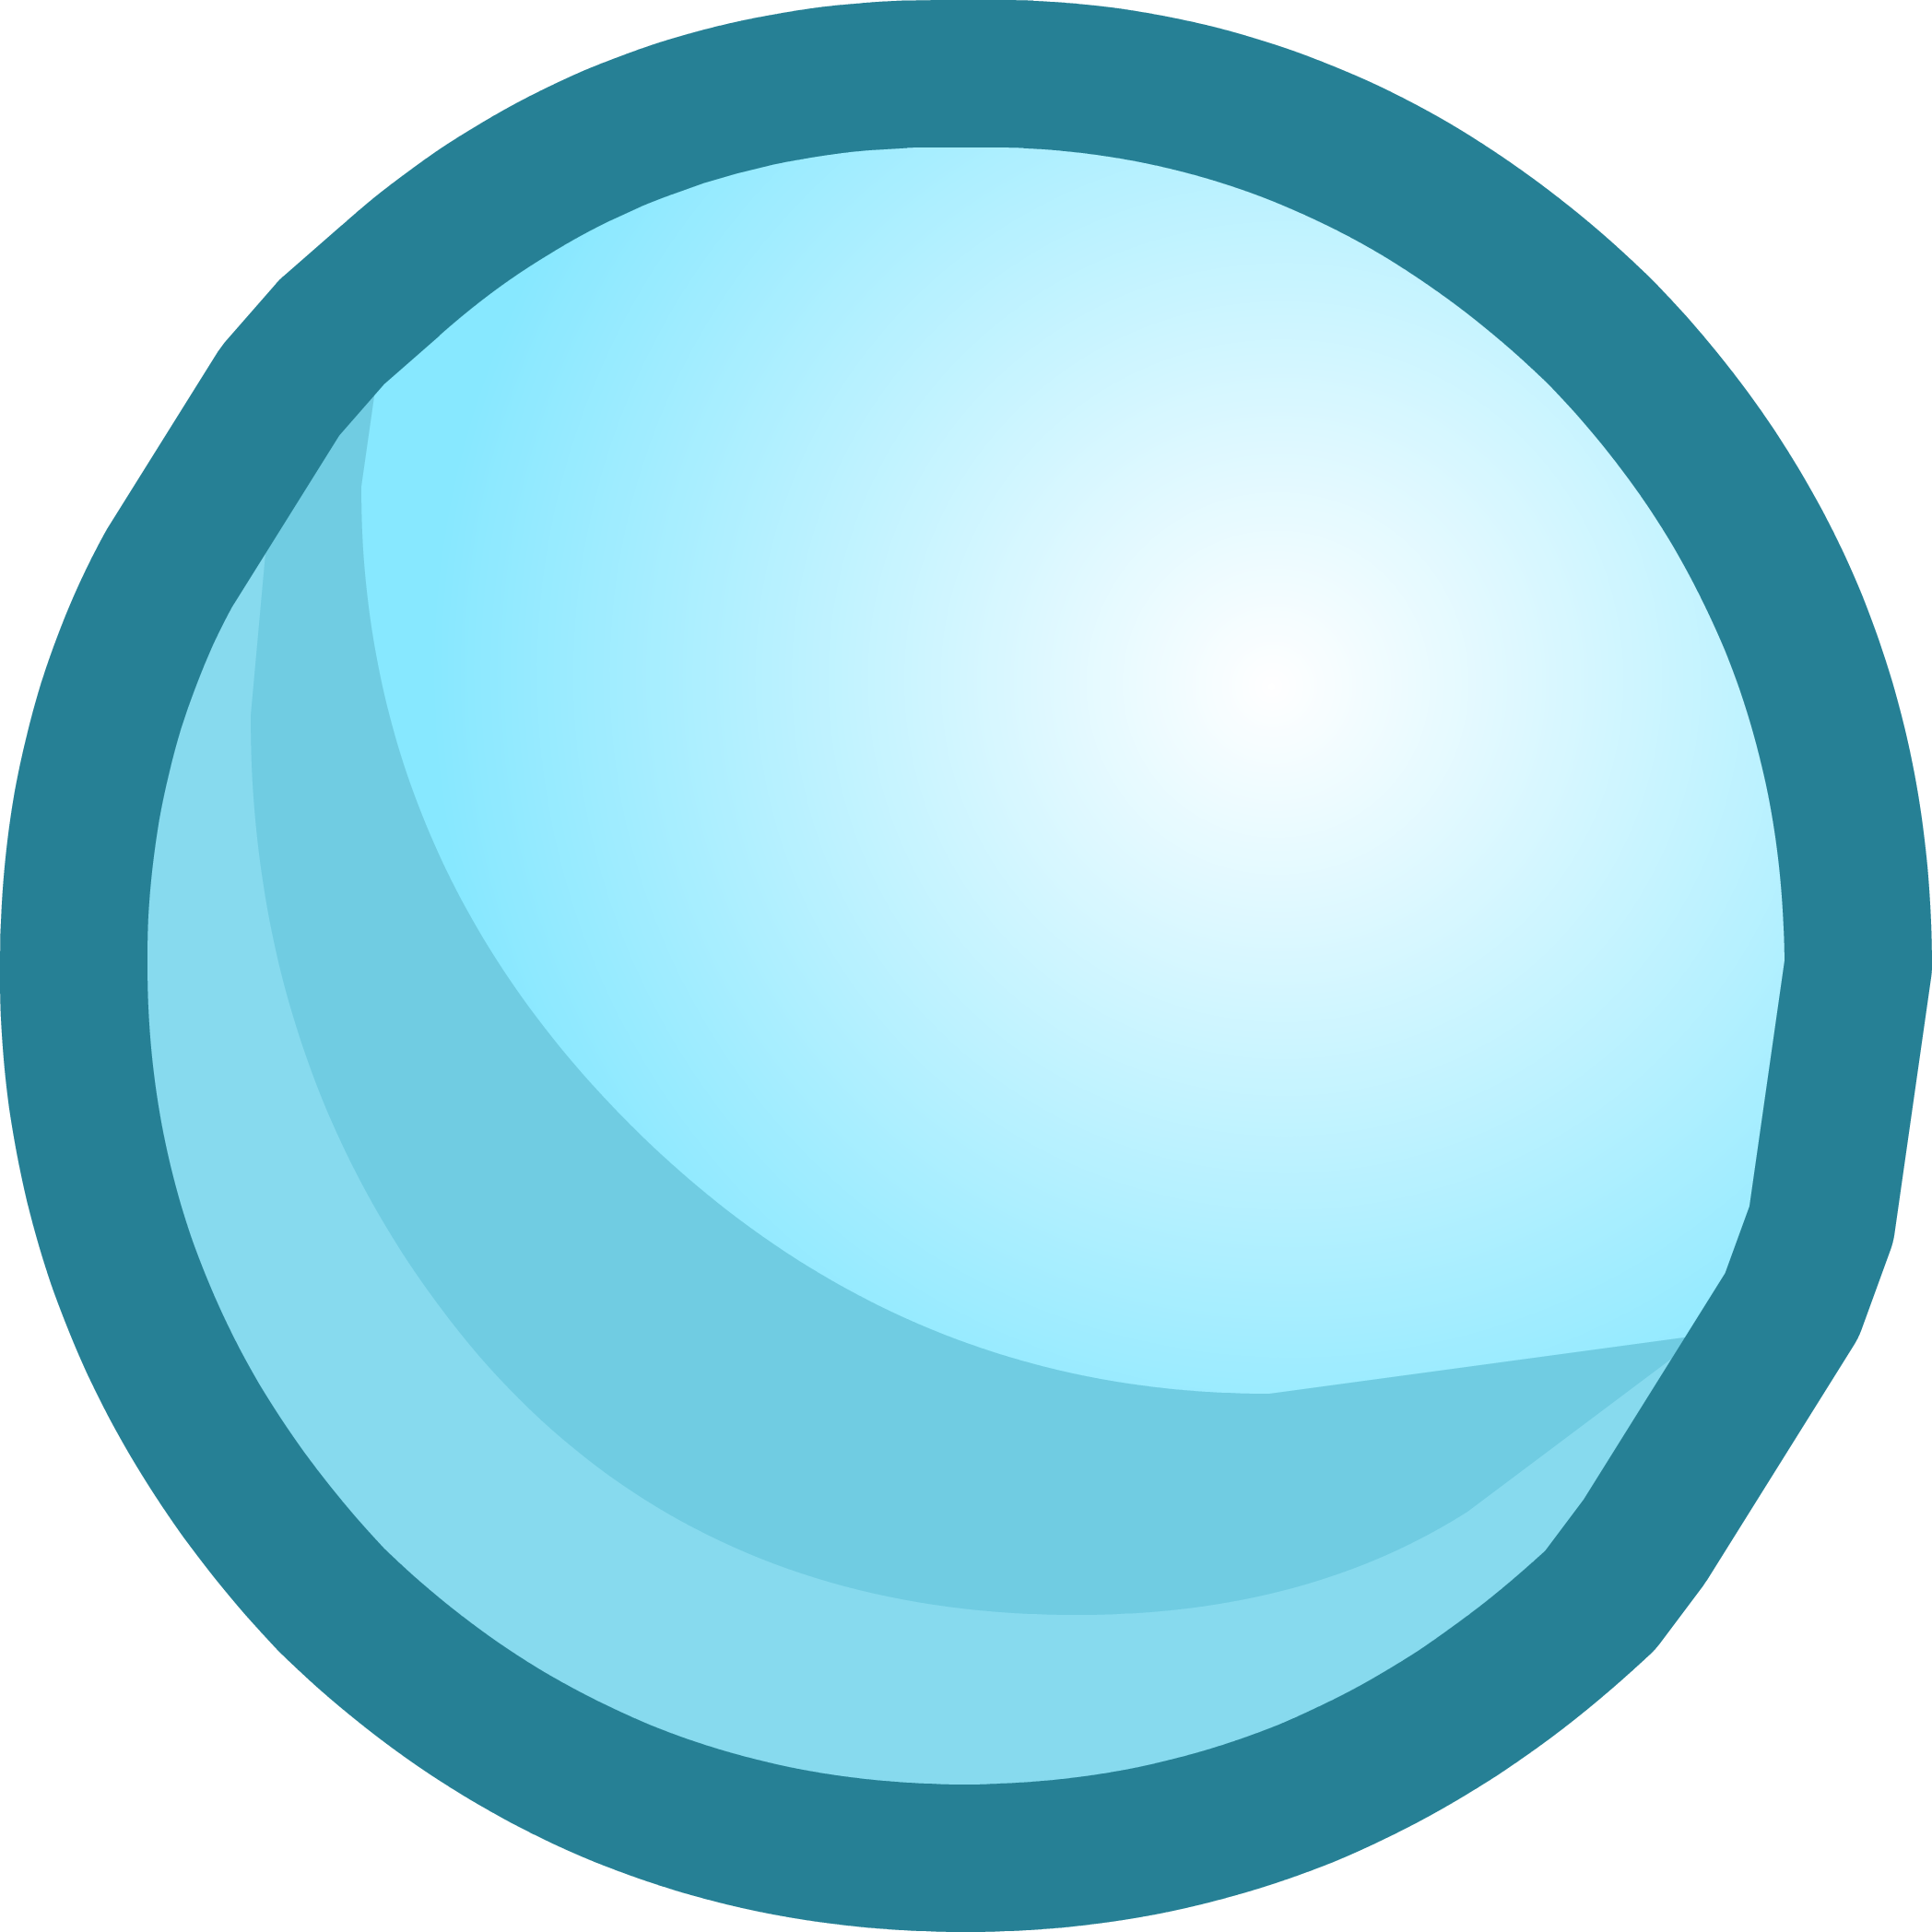 Minecraft snowball png. Image puffle hotel spa